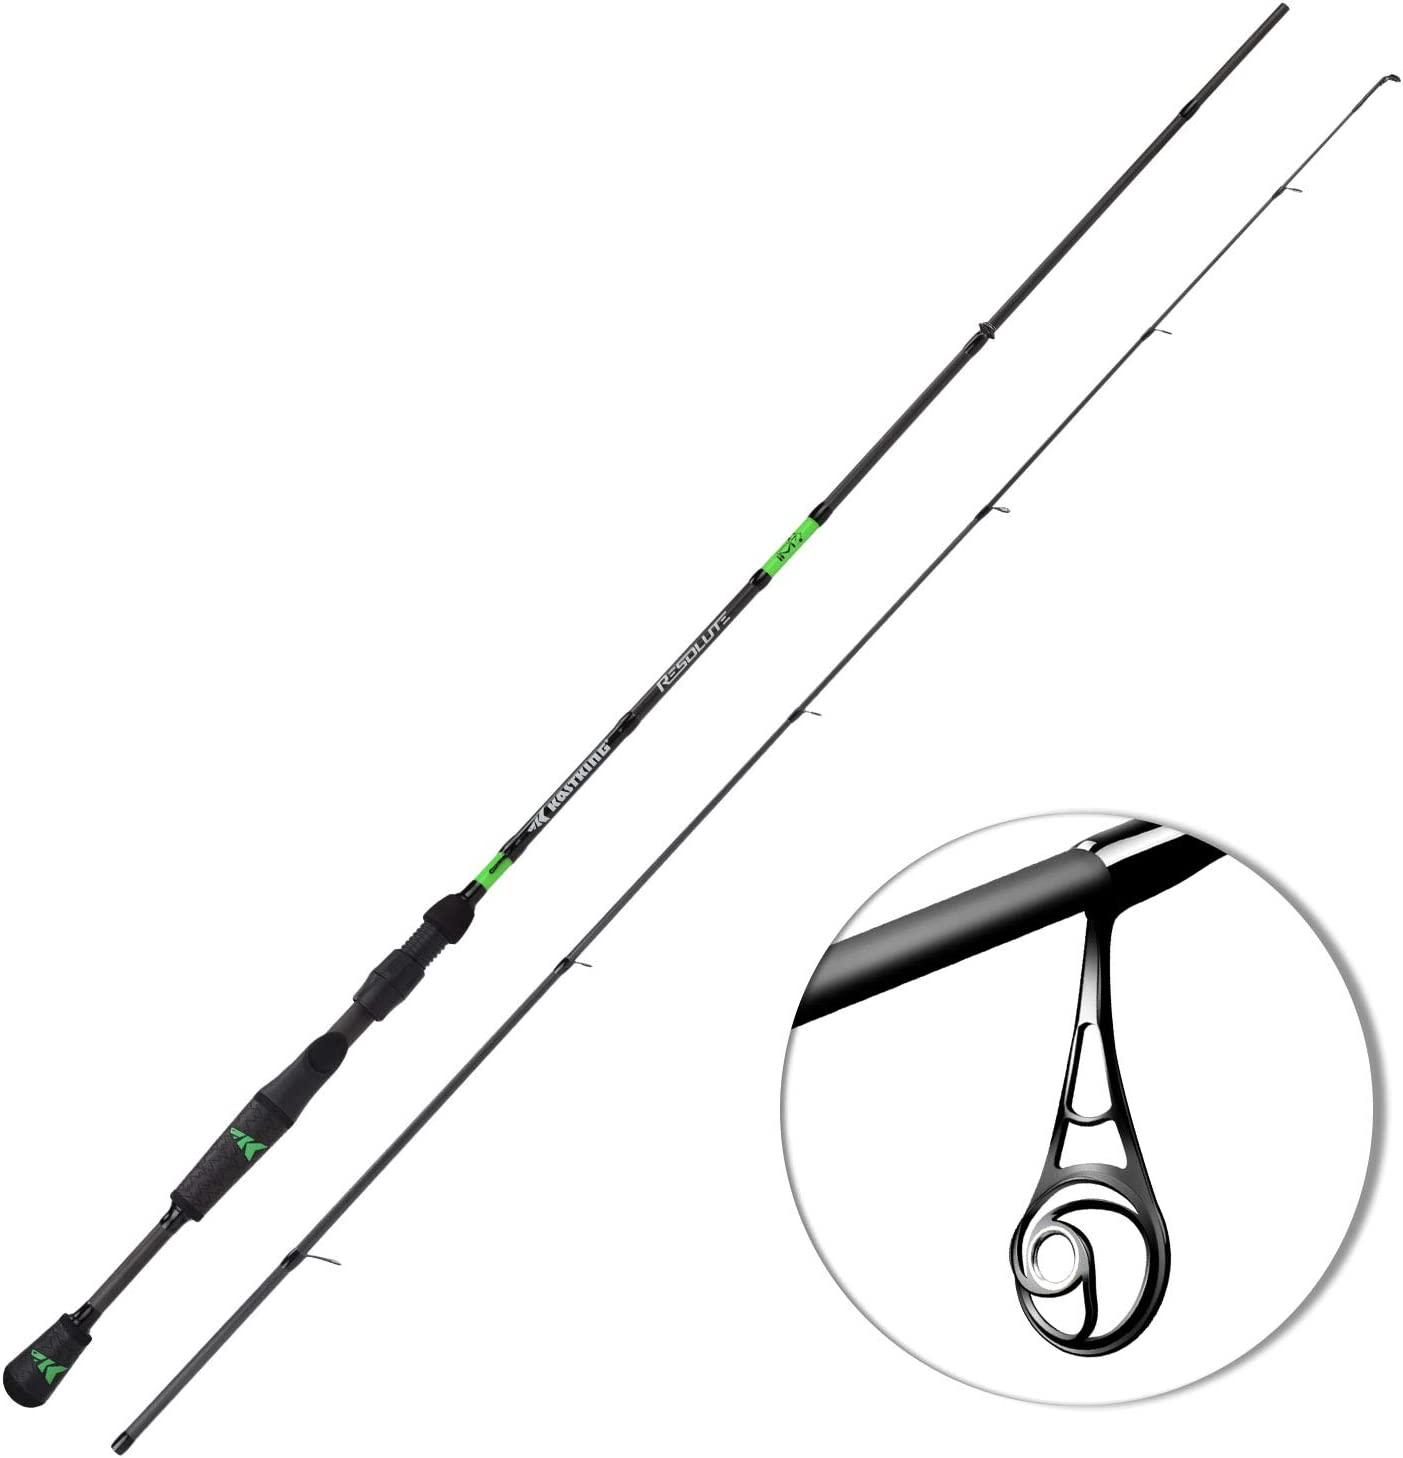 KastKing Resolute Fishing Rod (6'0 2PC)